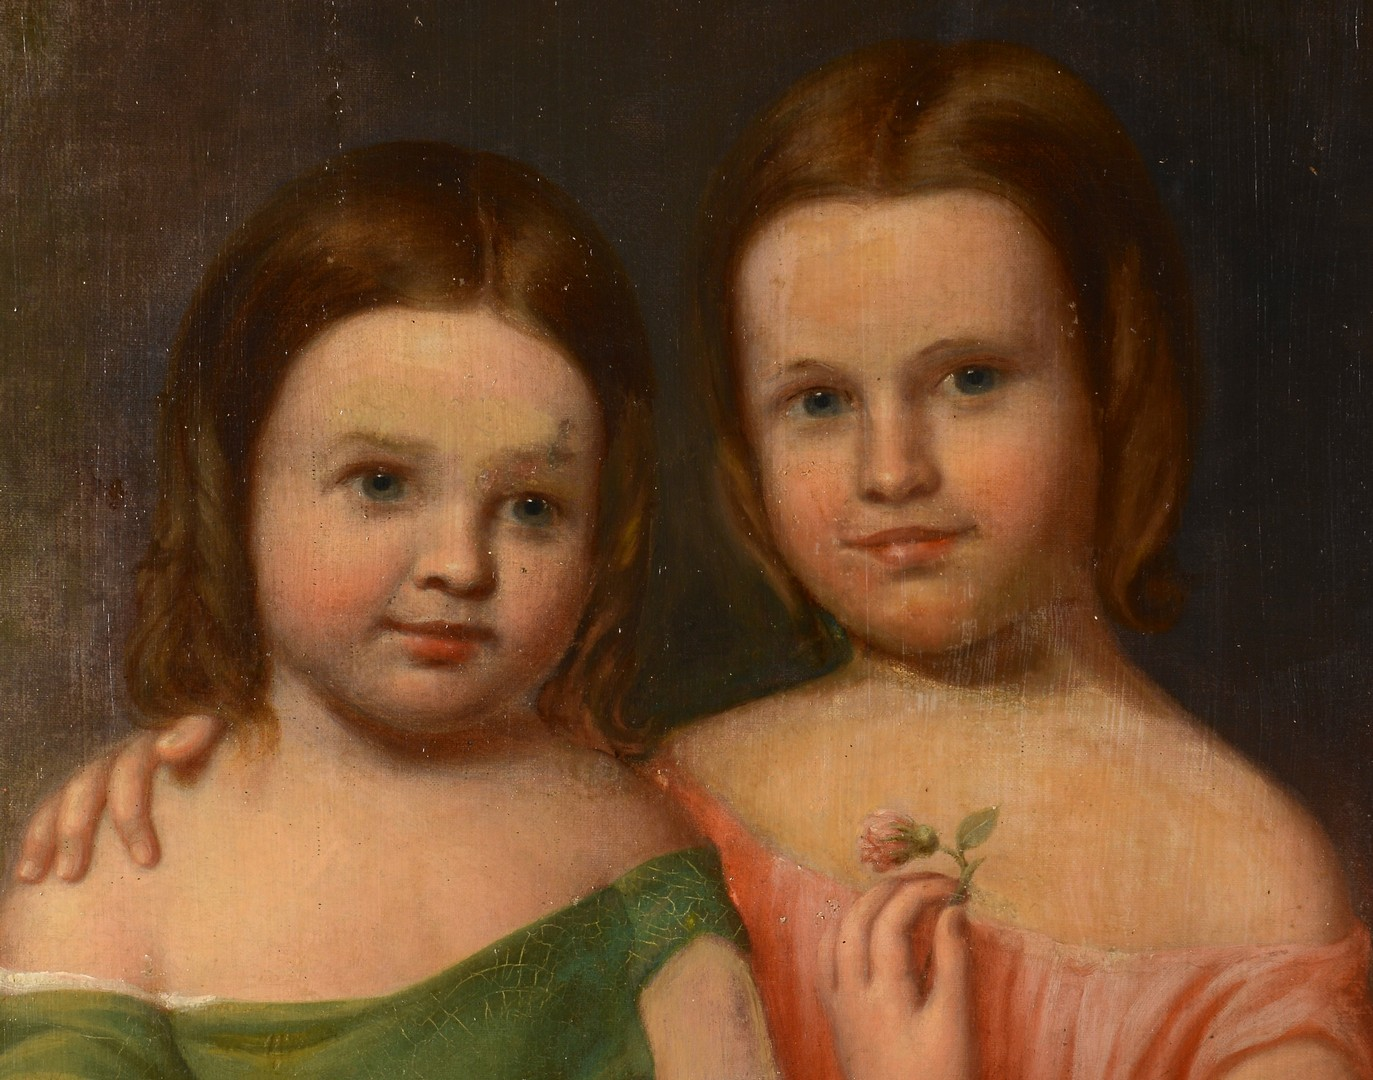 Lot 537: Oval Oil on Portrait of 2 Young Girls w/ Flowers